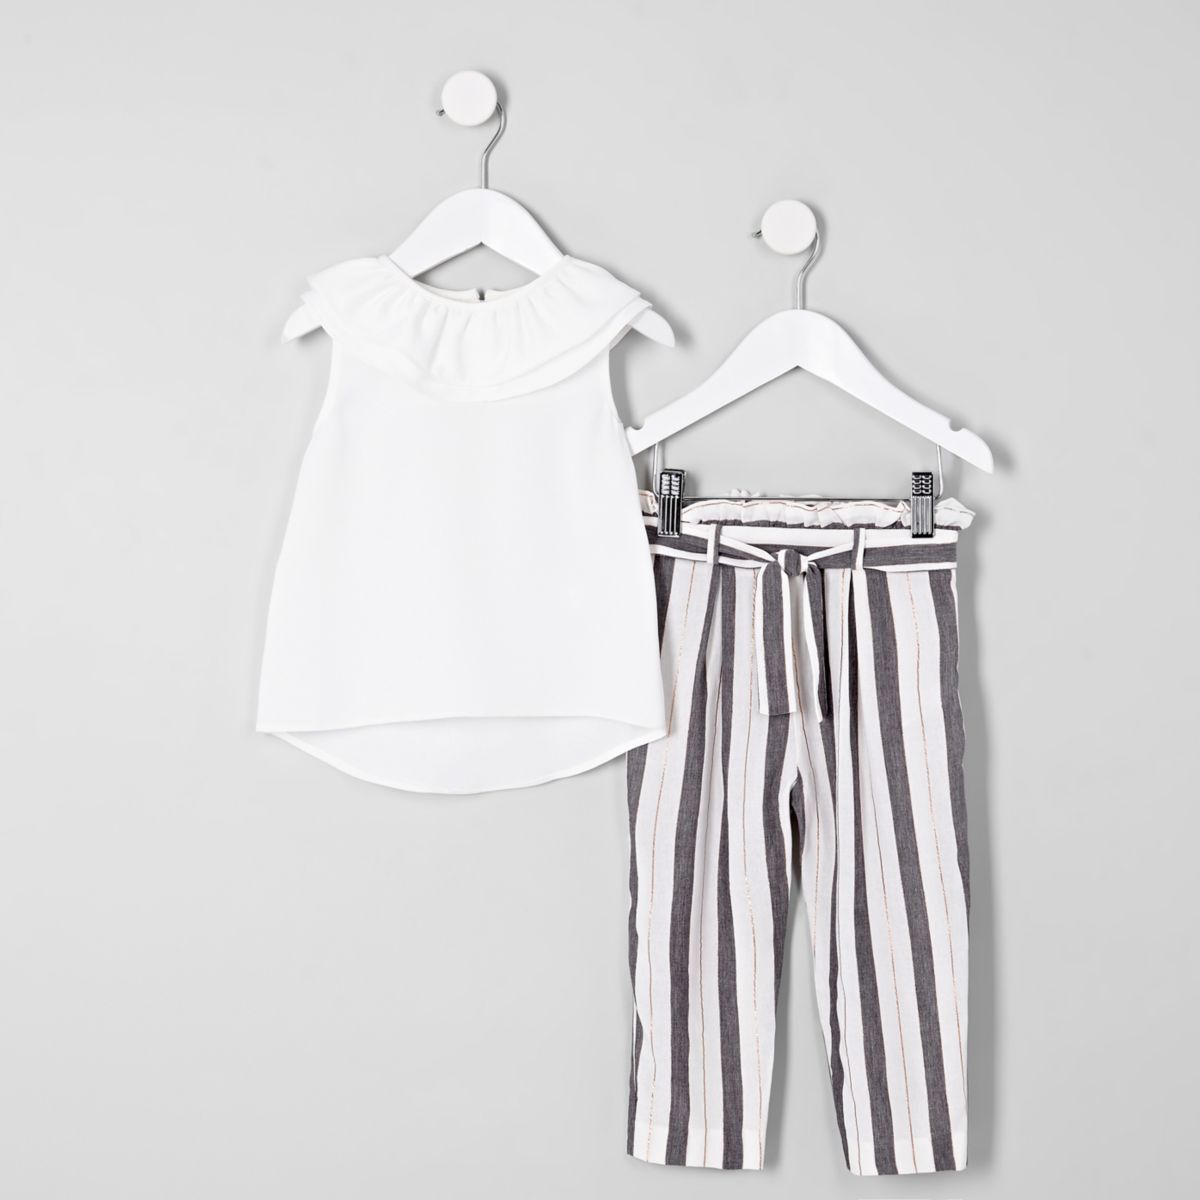 Mini girls white tiered frill top outfit